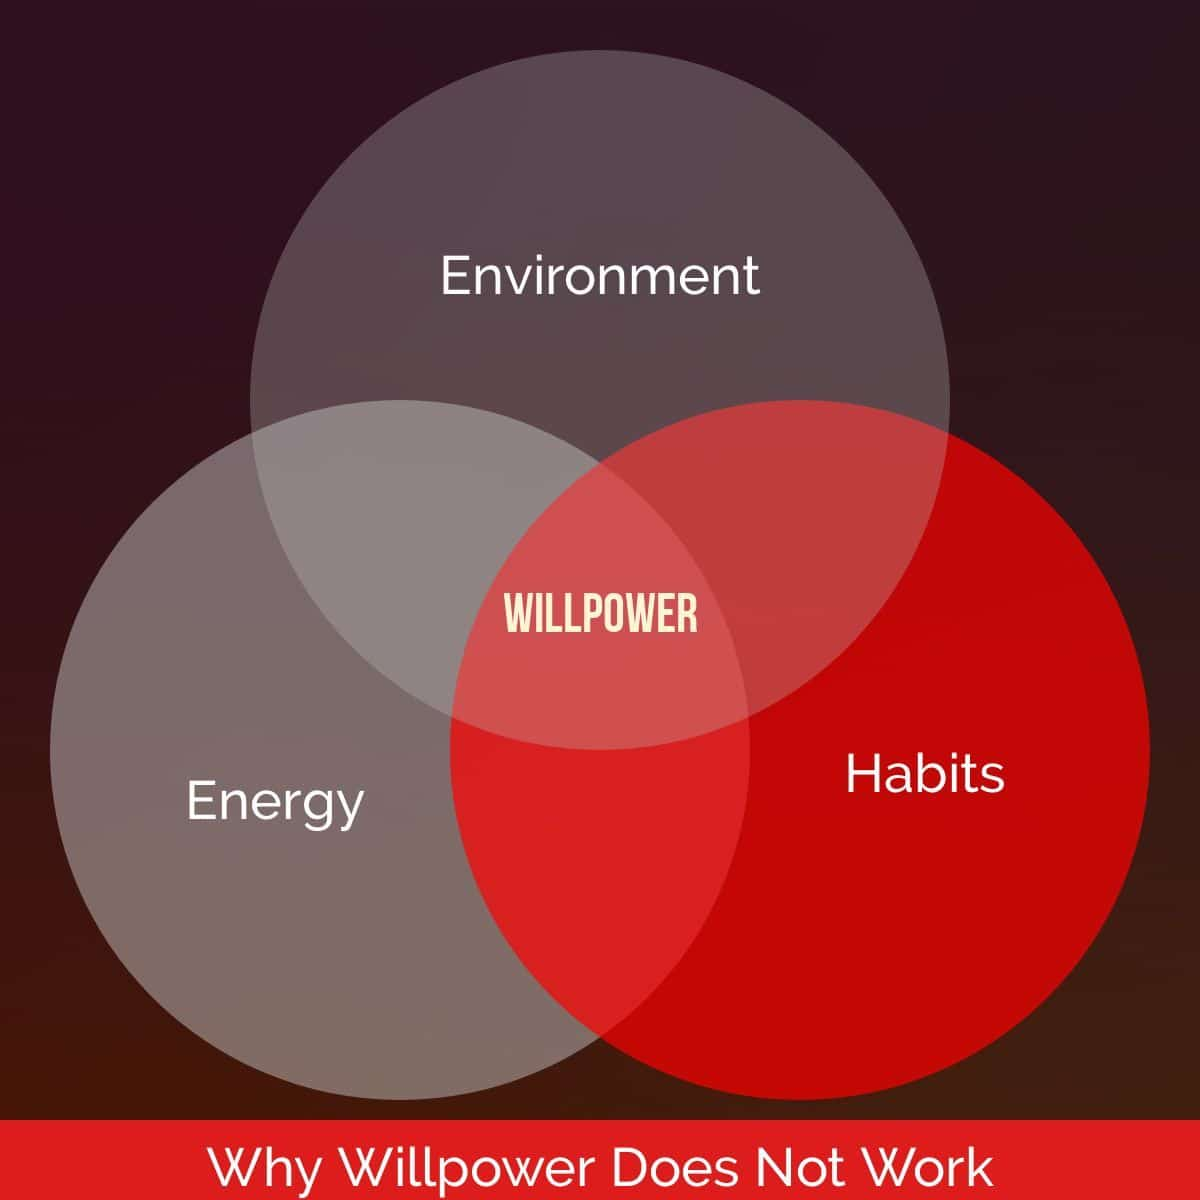 Why Willpower Does Not Work